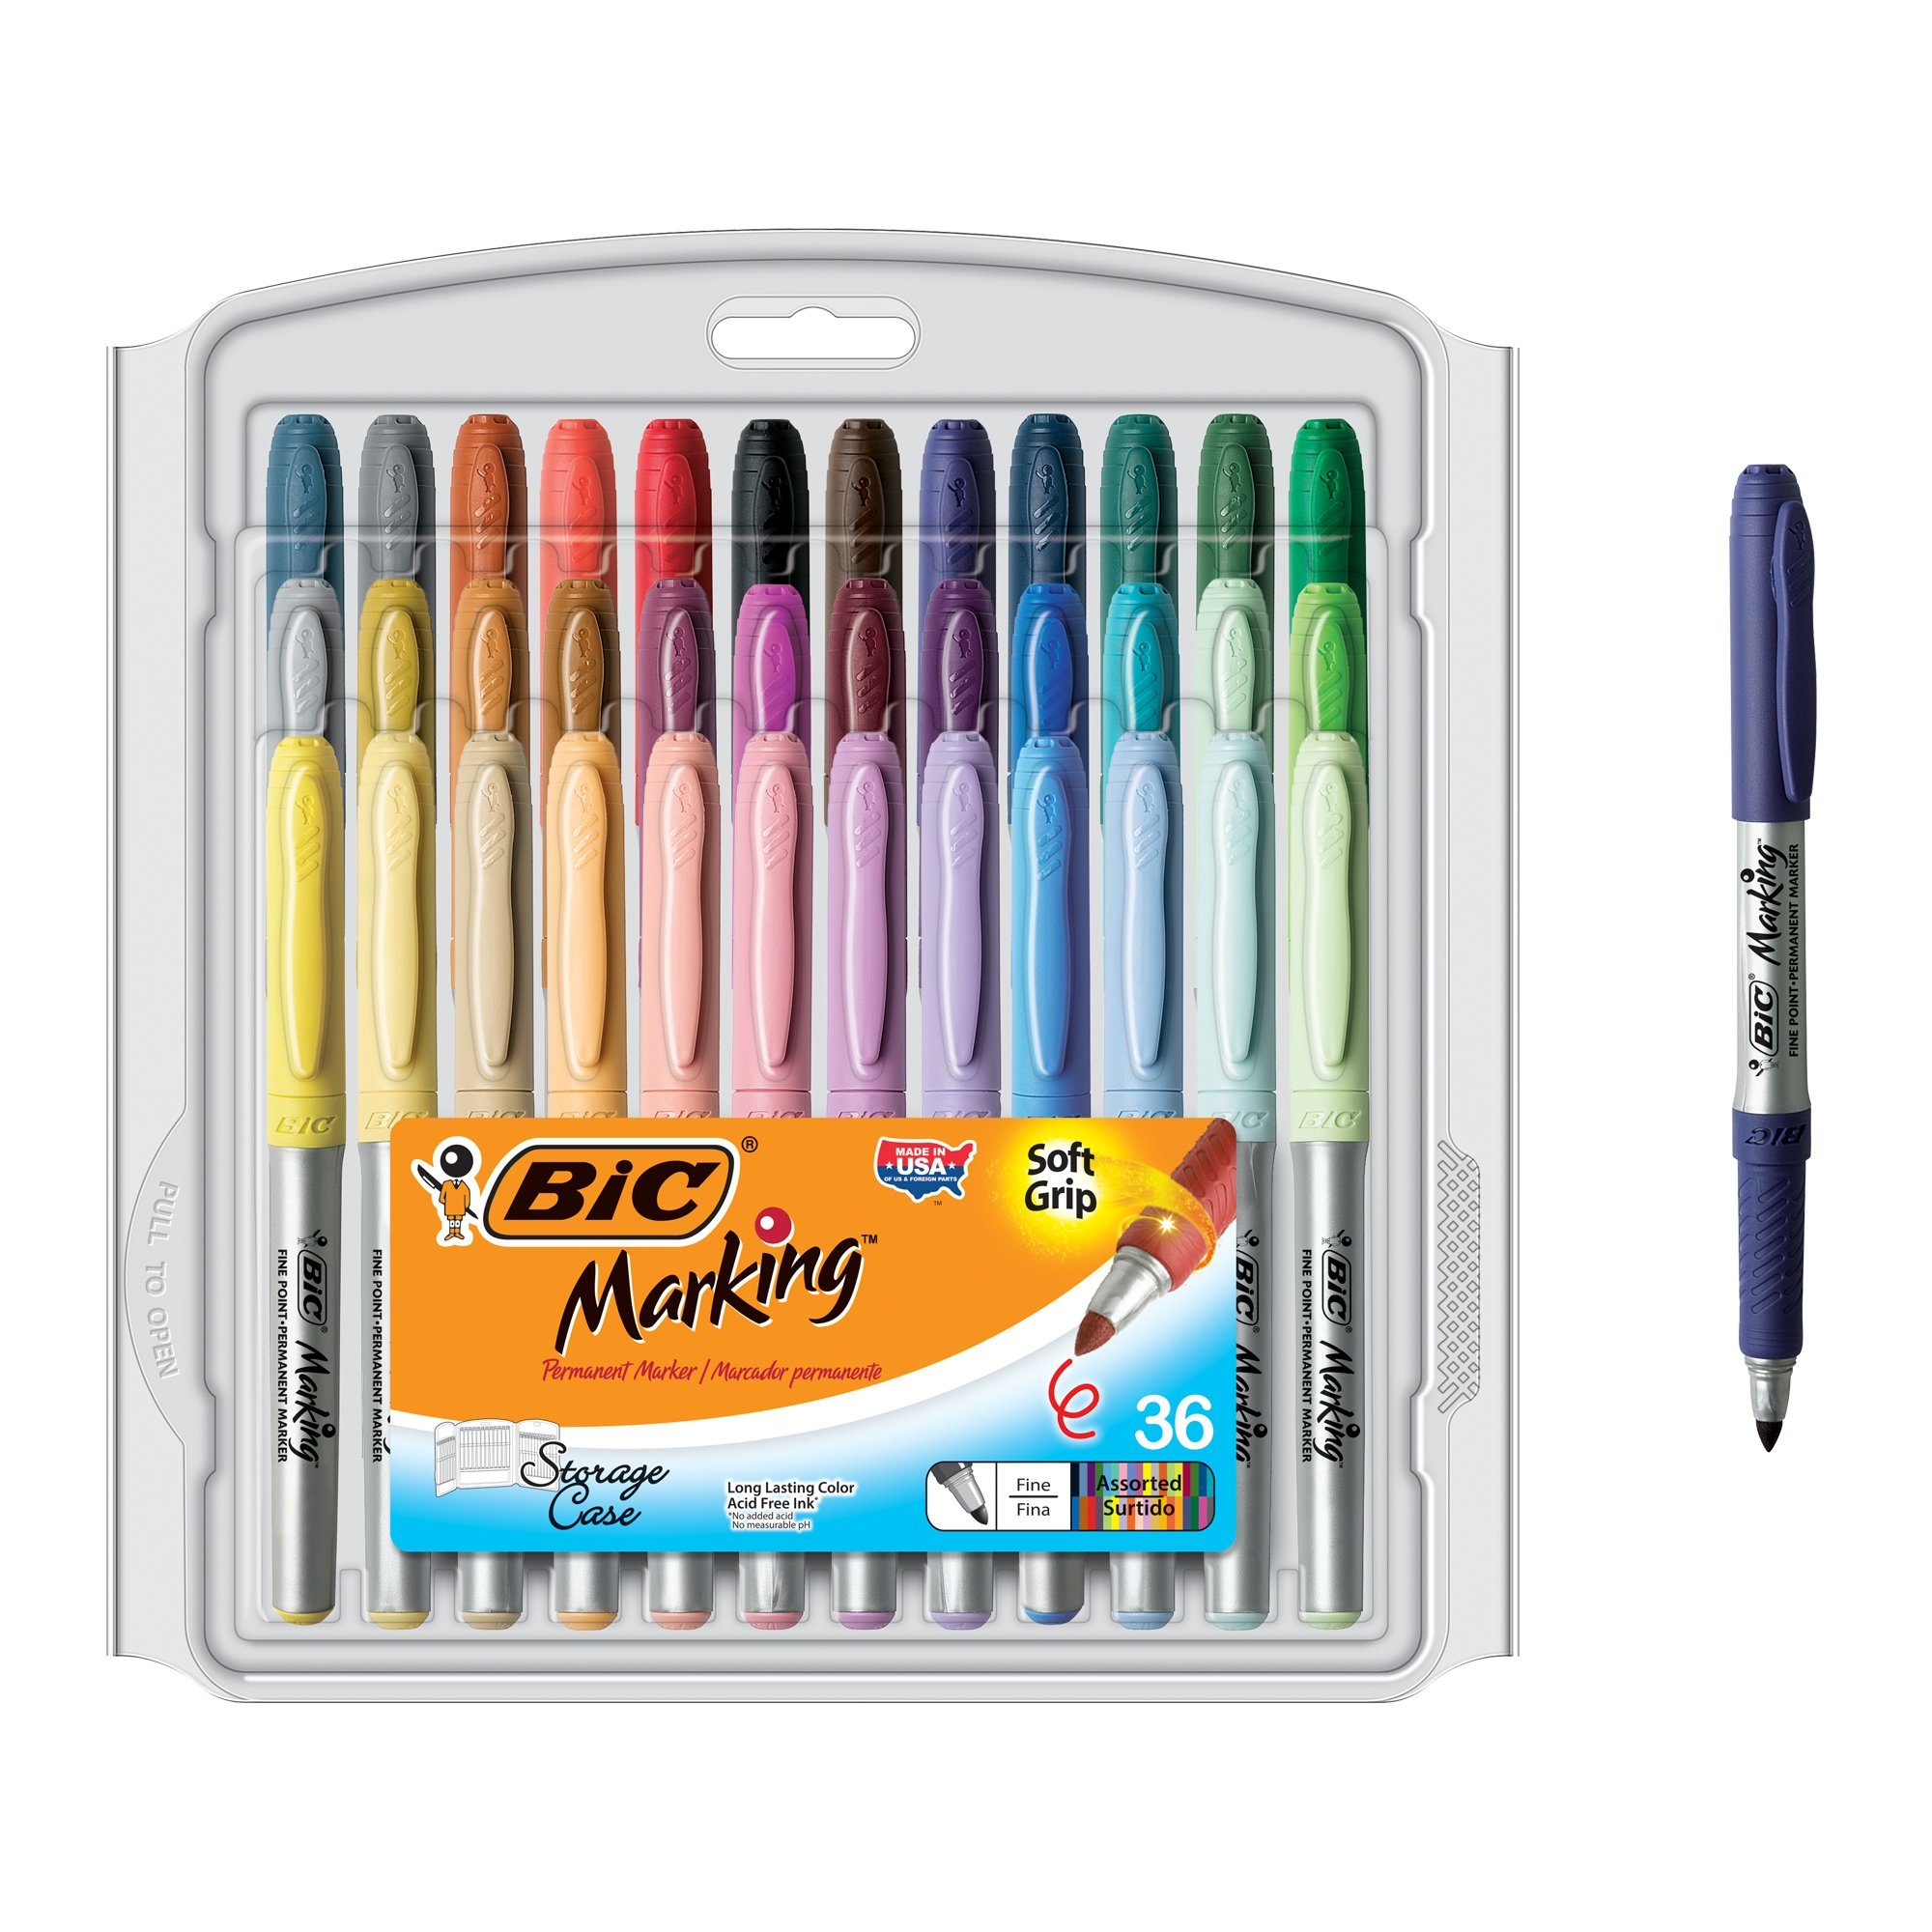 BIC Marking Fashion Permanent Marker, Fine Point, Assorted Colors, 36-Count